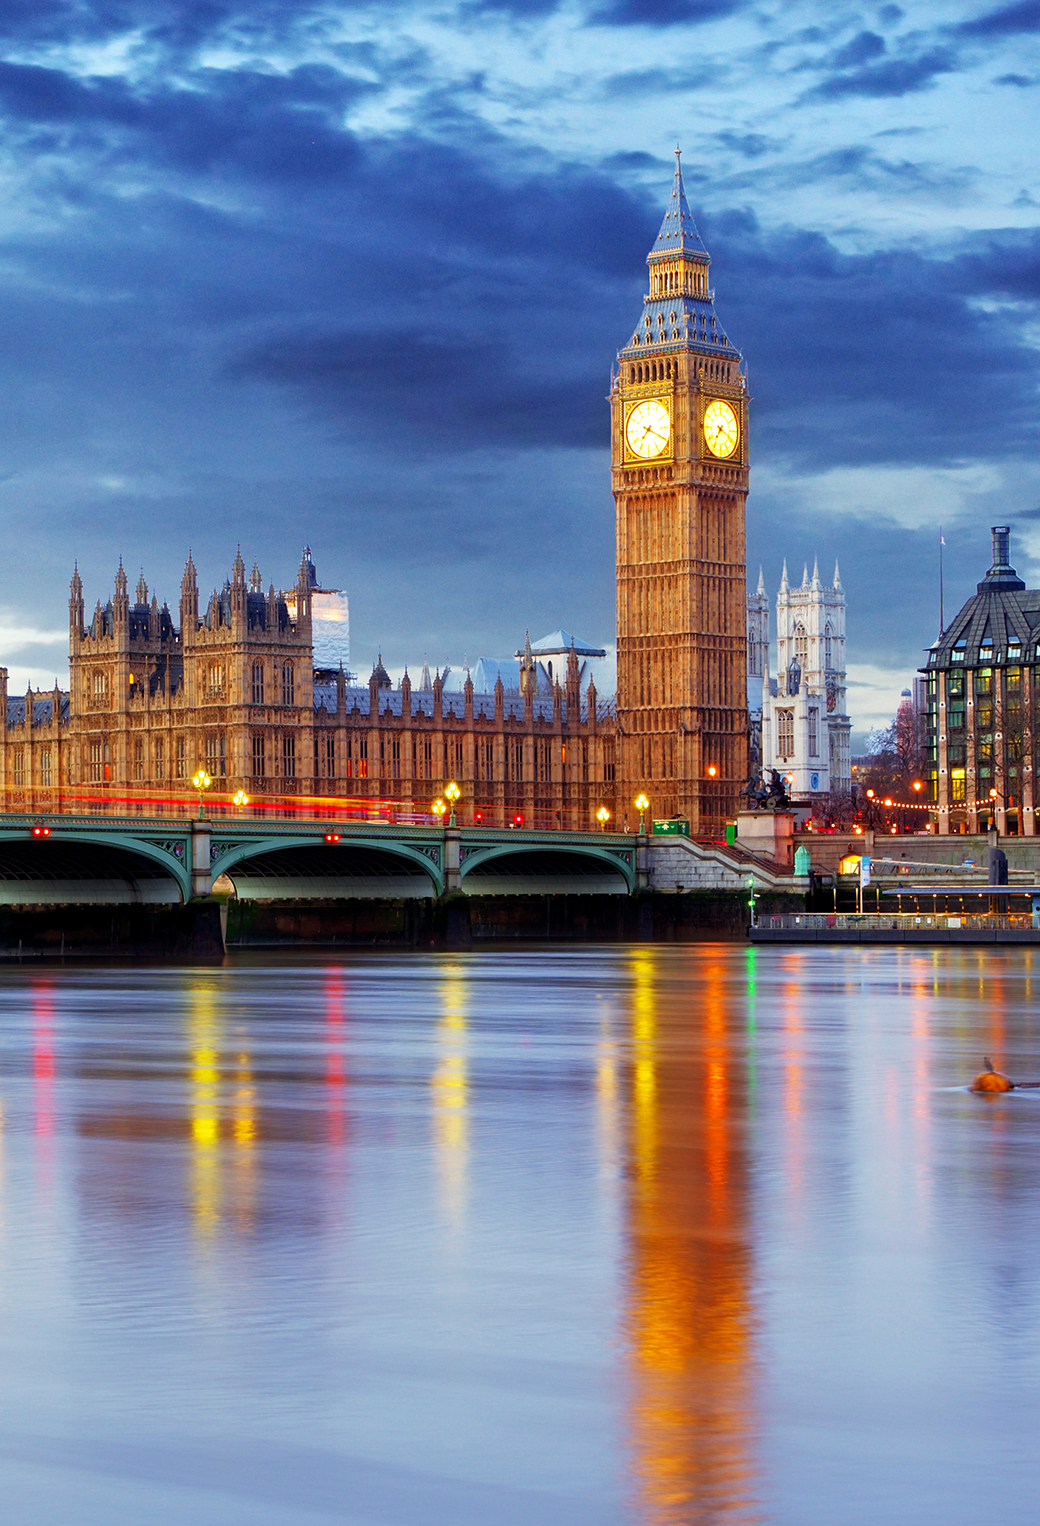 Windows 10 Wallpapers Girl Forest Big Ben London Wallpaper For Iphone X 8 7 6 Free